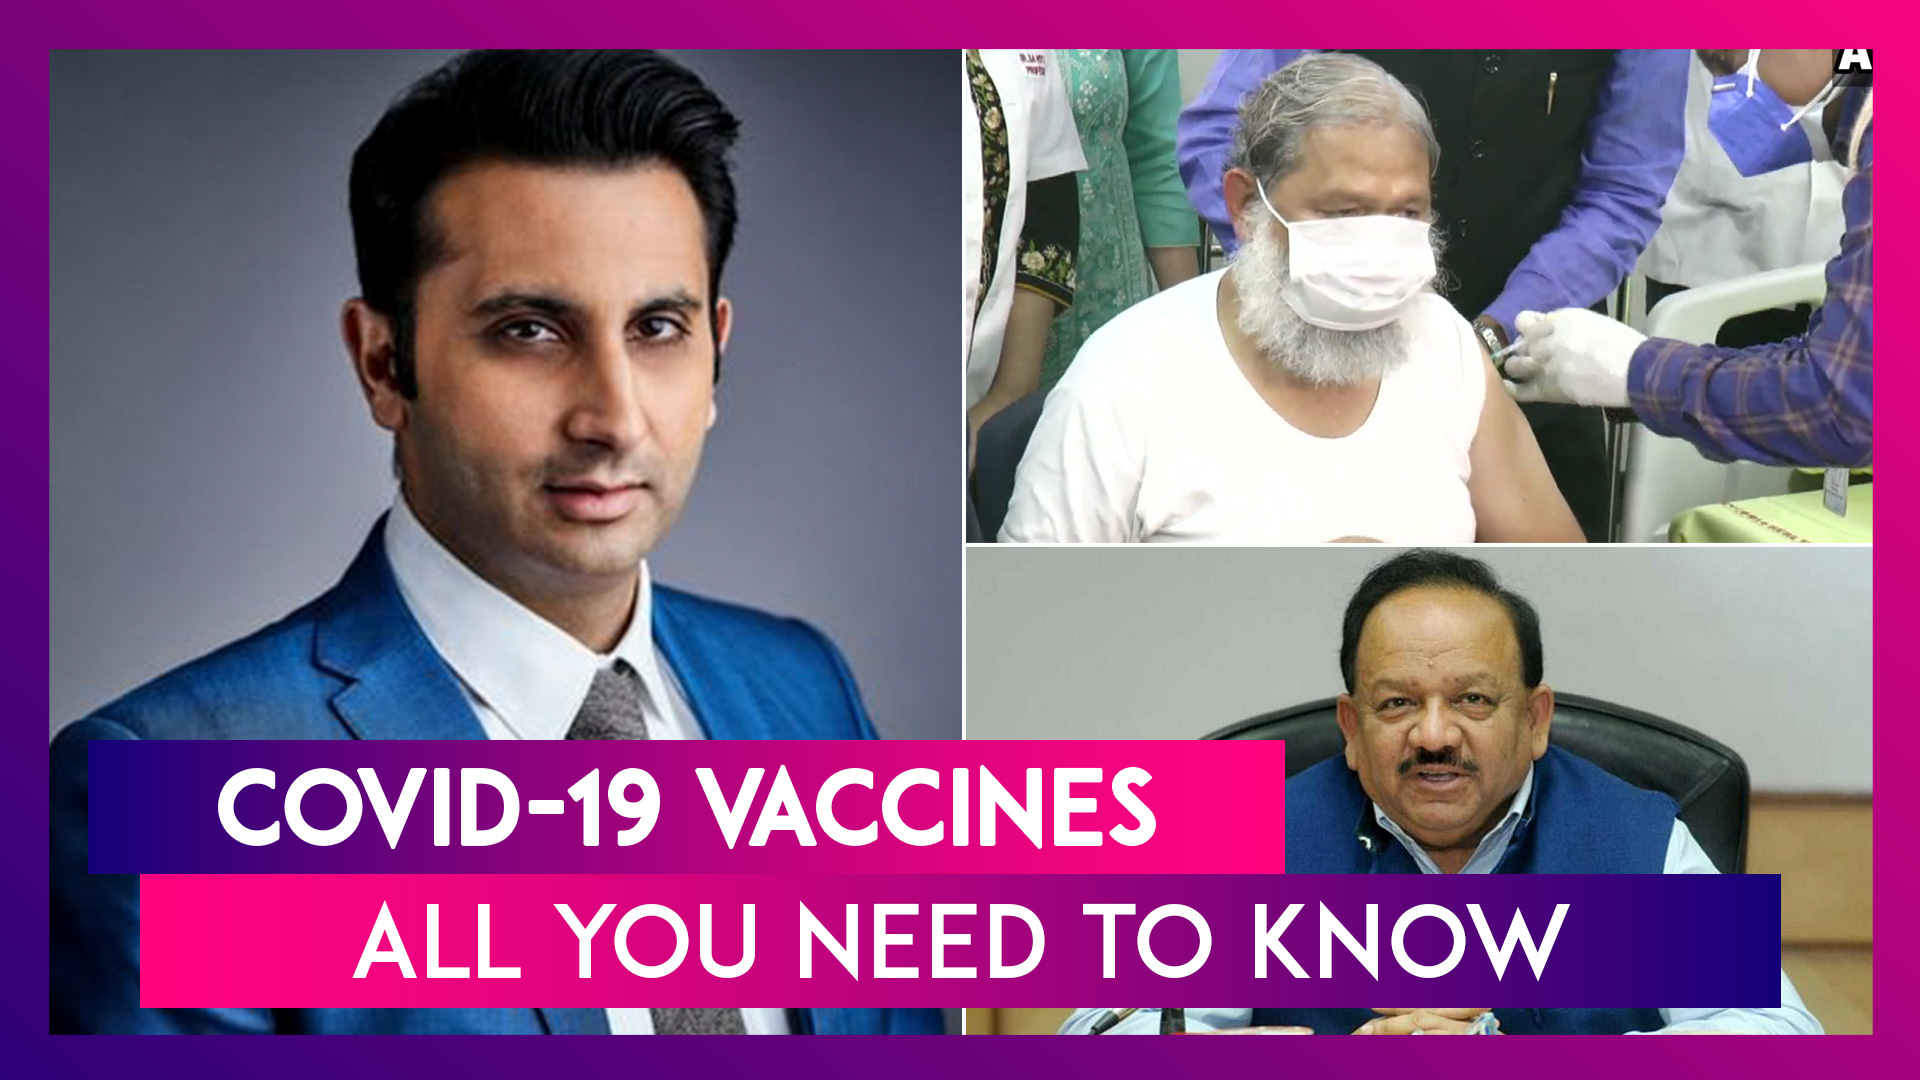 Anil Vij, Haryana Minister Gets Trial Dose Of COVID-19 Vaccine Covaxin; Union Health Minister On India's Vaccine Distribution Plan; Oxford Vaccine Likely By April 2021, Rs 1,000 For 2 Doses: Adar Poonawalla